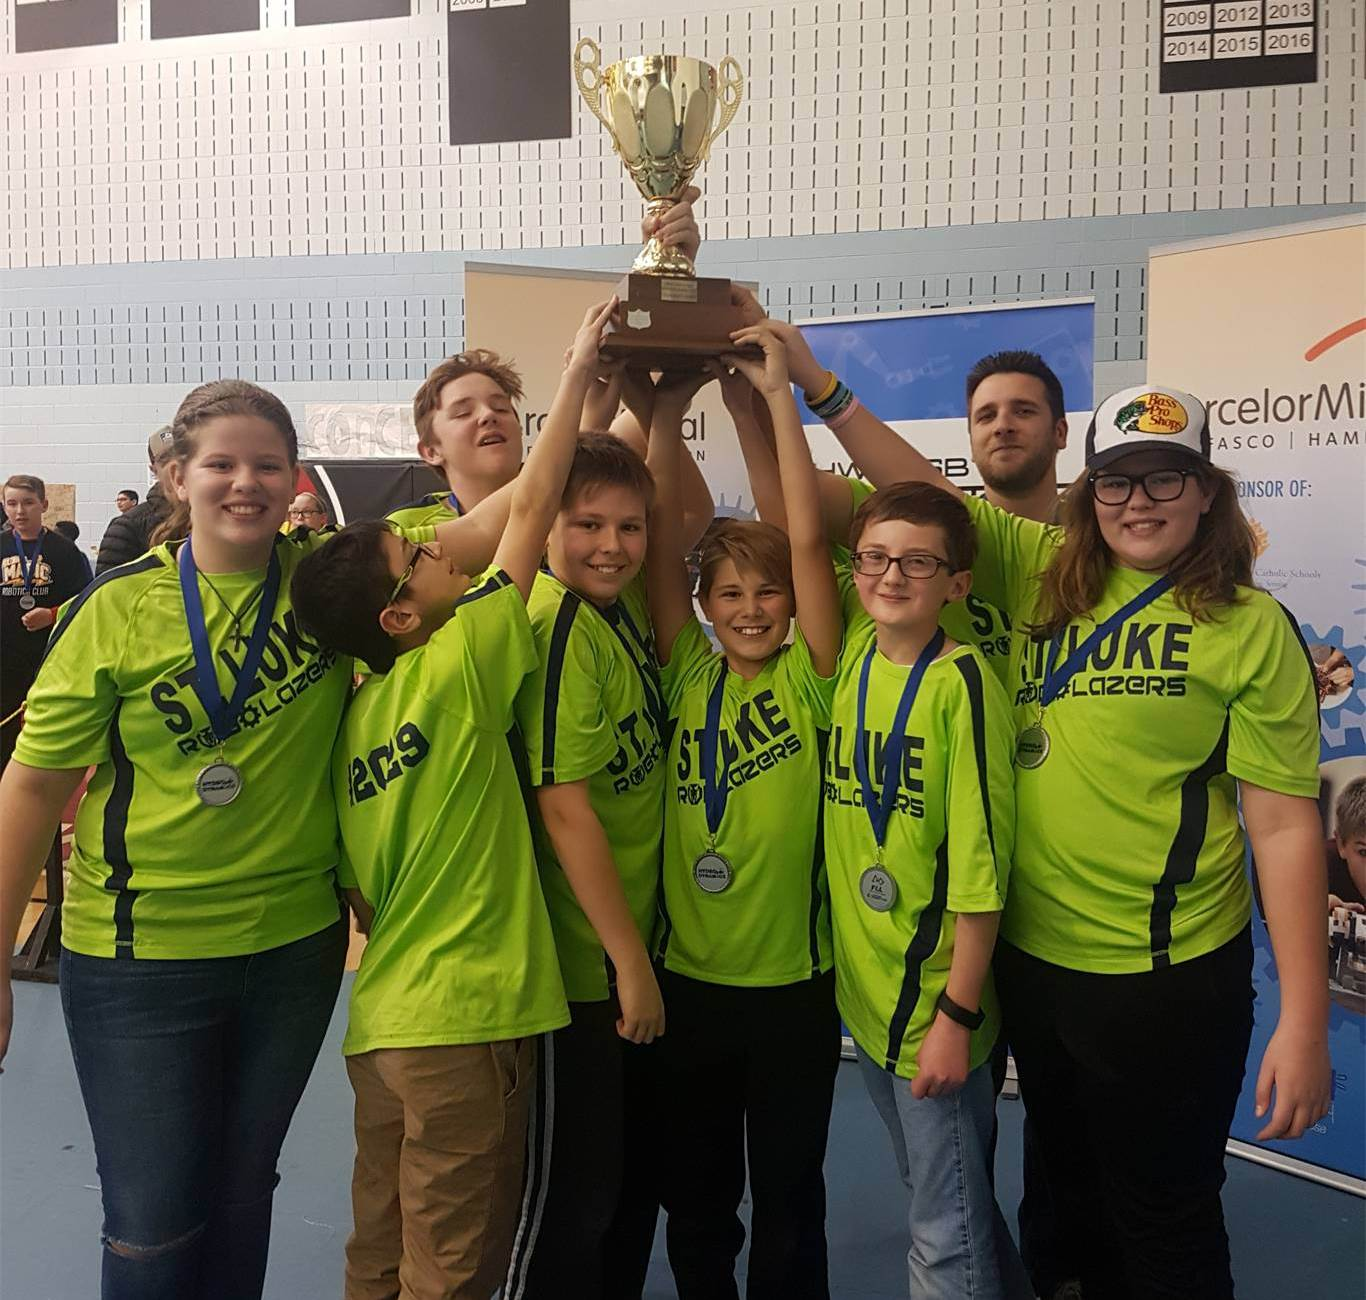 St. Luke RoboLazers were the big winners at Saturday's FIRST Lego League Hamilton Qualifier. The team placed first in the competition and is one of four HWCDSB teams to advance to the FLL Provincial Tournament in January.